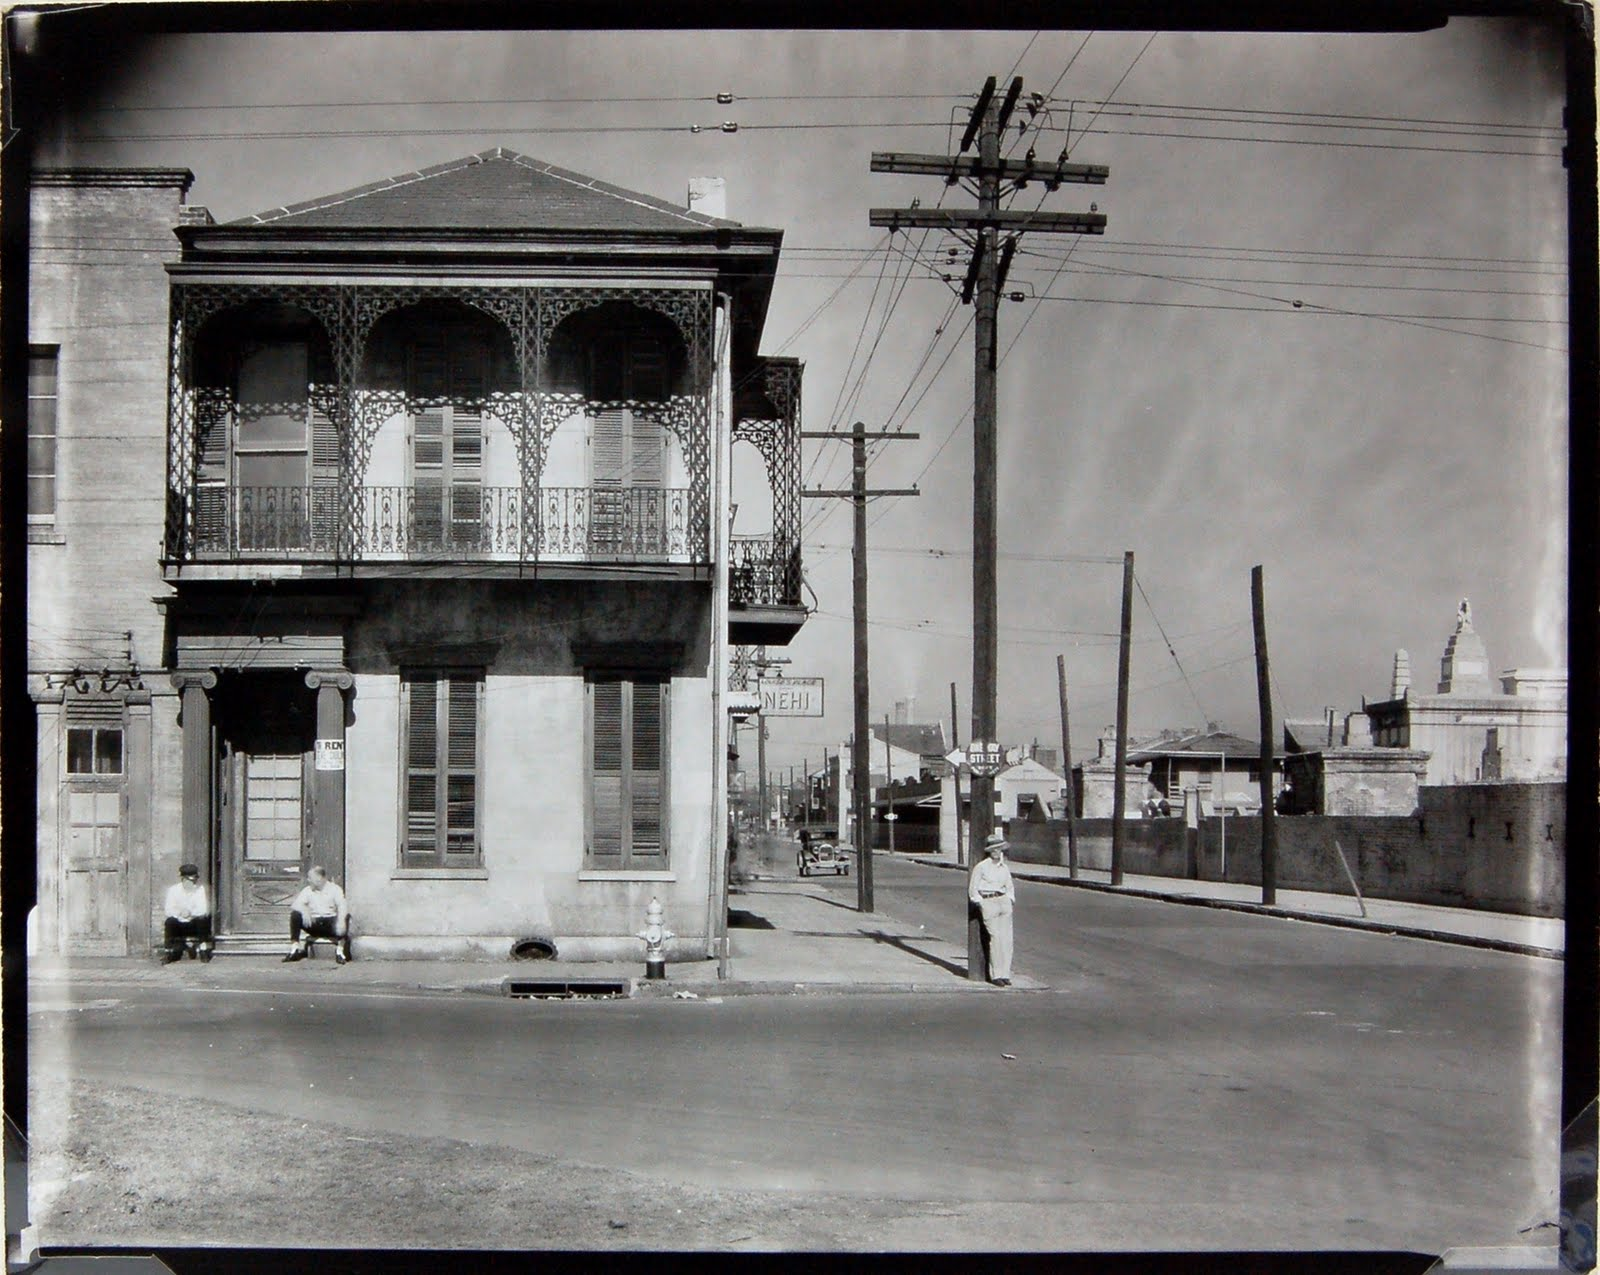 1935 Greek Revival Townhouse with Men Seated in Dourway, New Orleans